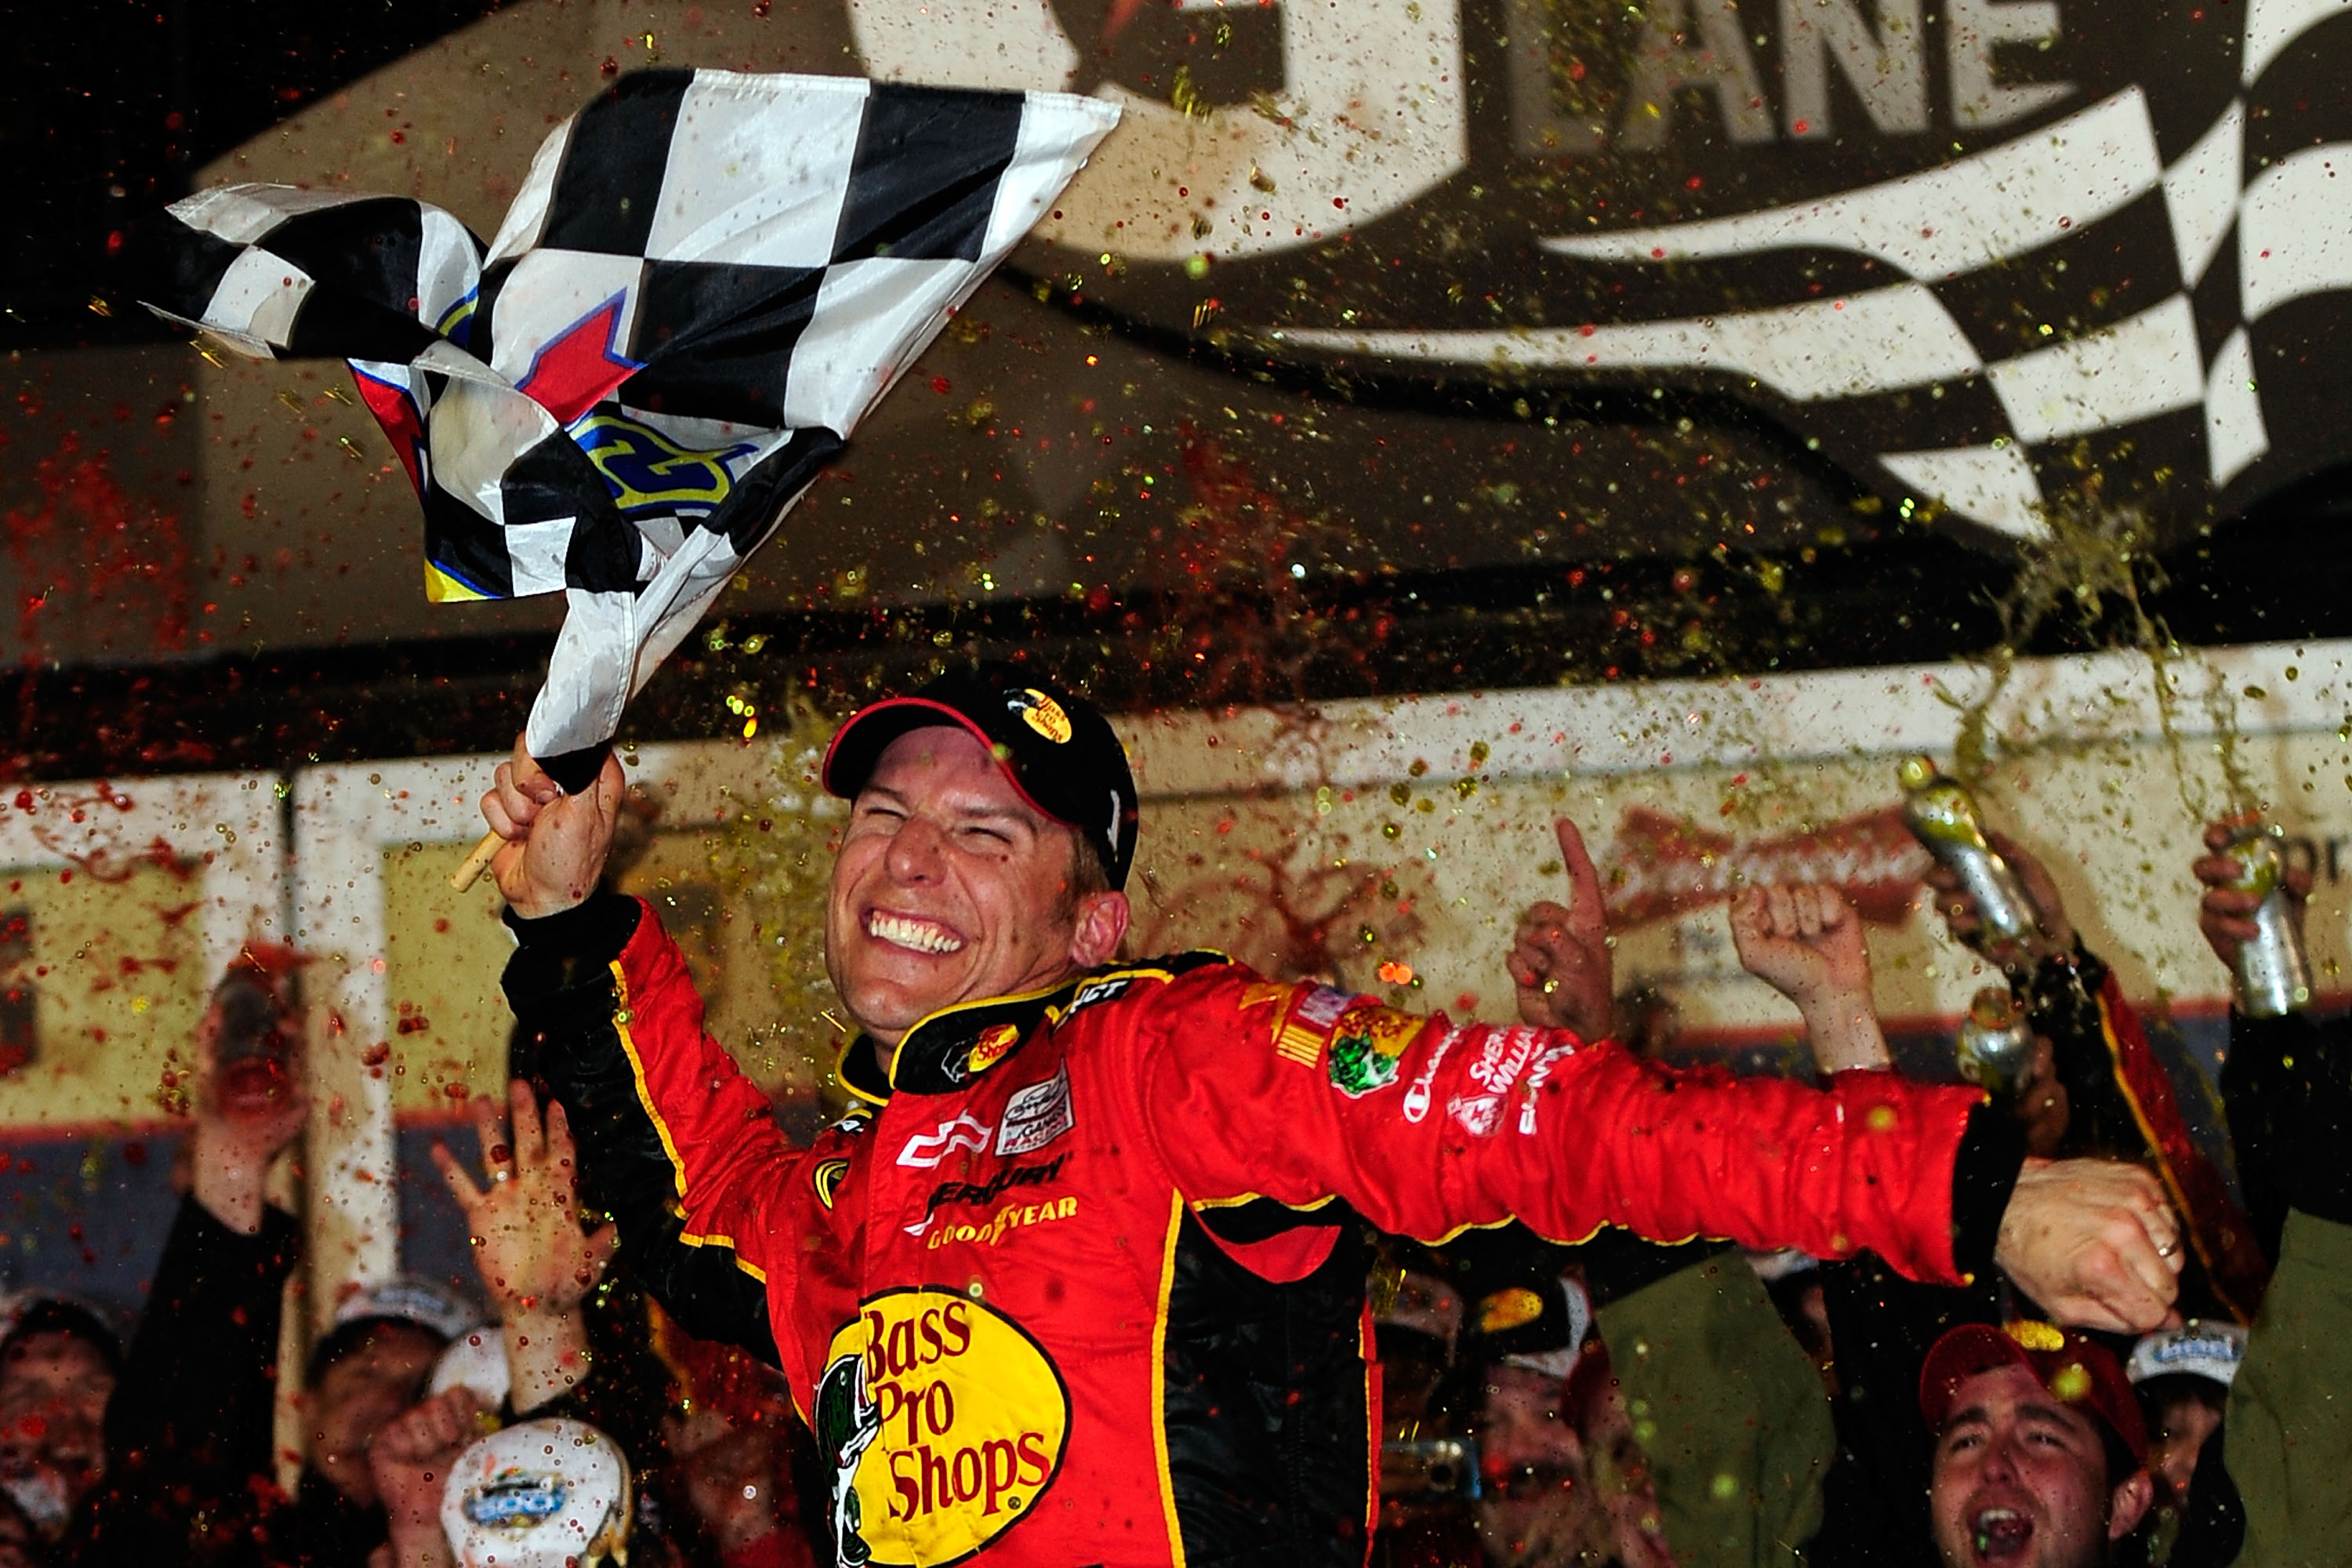 DAYTONA BEACH, FL - FEBRUARY 14:  Jamie McMurray, driver of the #1 Bass Pro Shops/Tracker Boats Chevrolet, celebrates in Victory Lane after winning the NASCAR Sprint Cup Series Daytona 500 at Daytona International Speedway on February 14, 2010 in Daytona